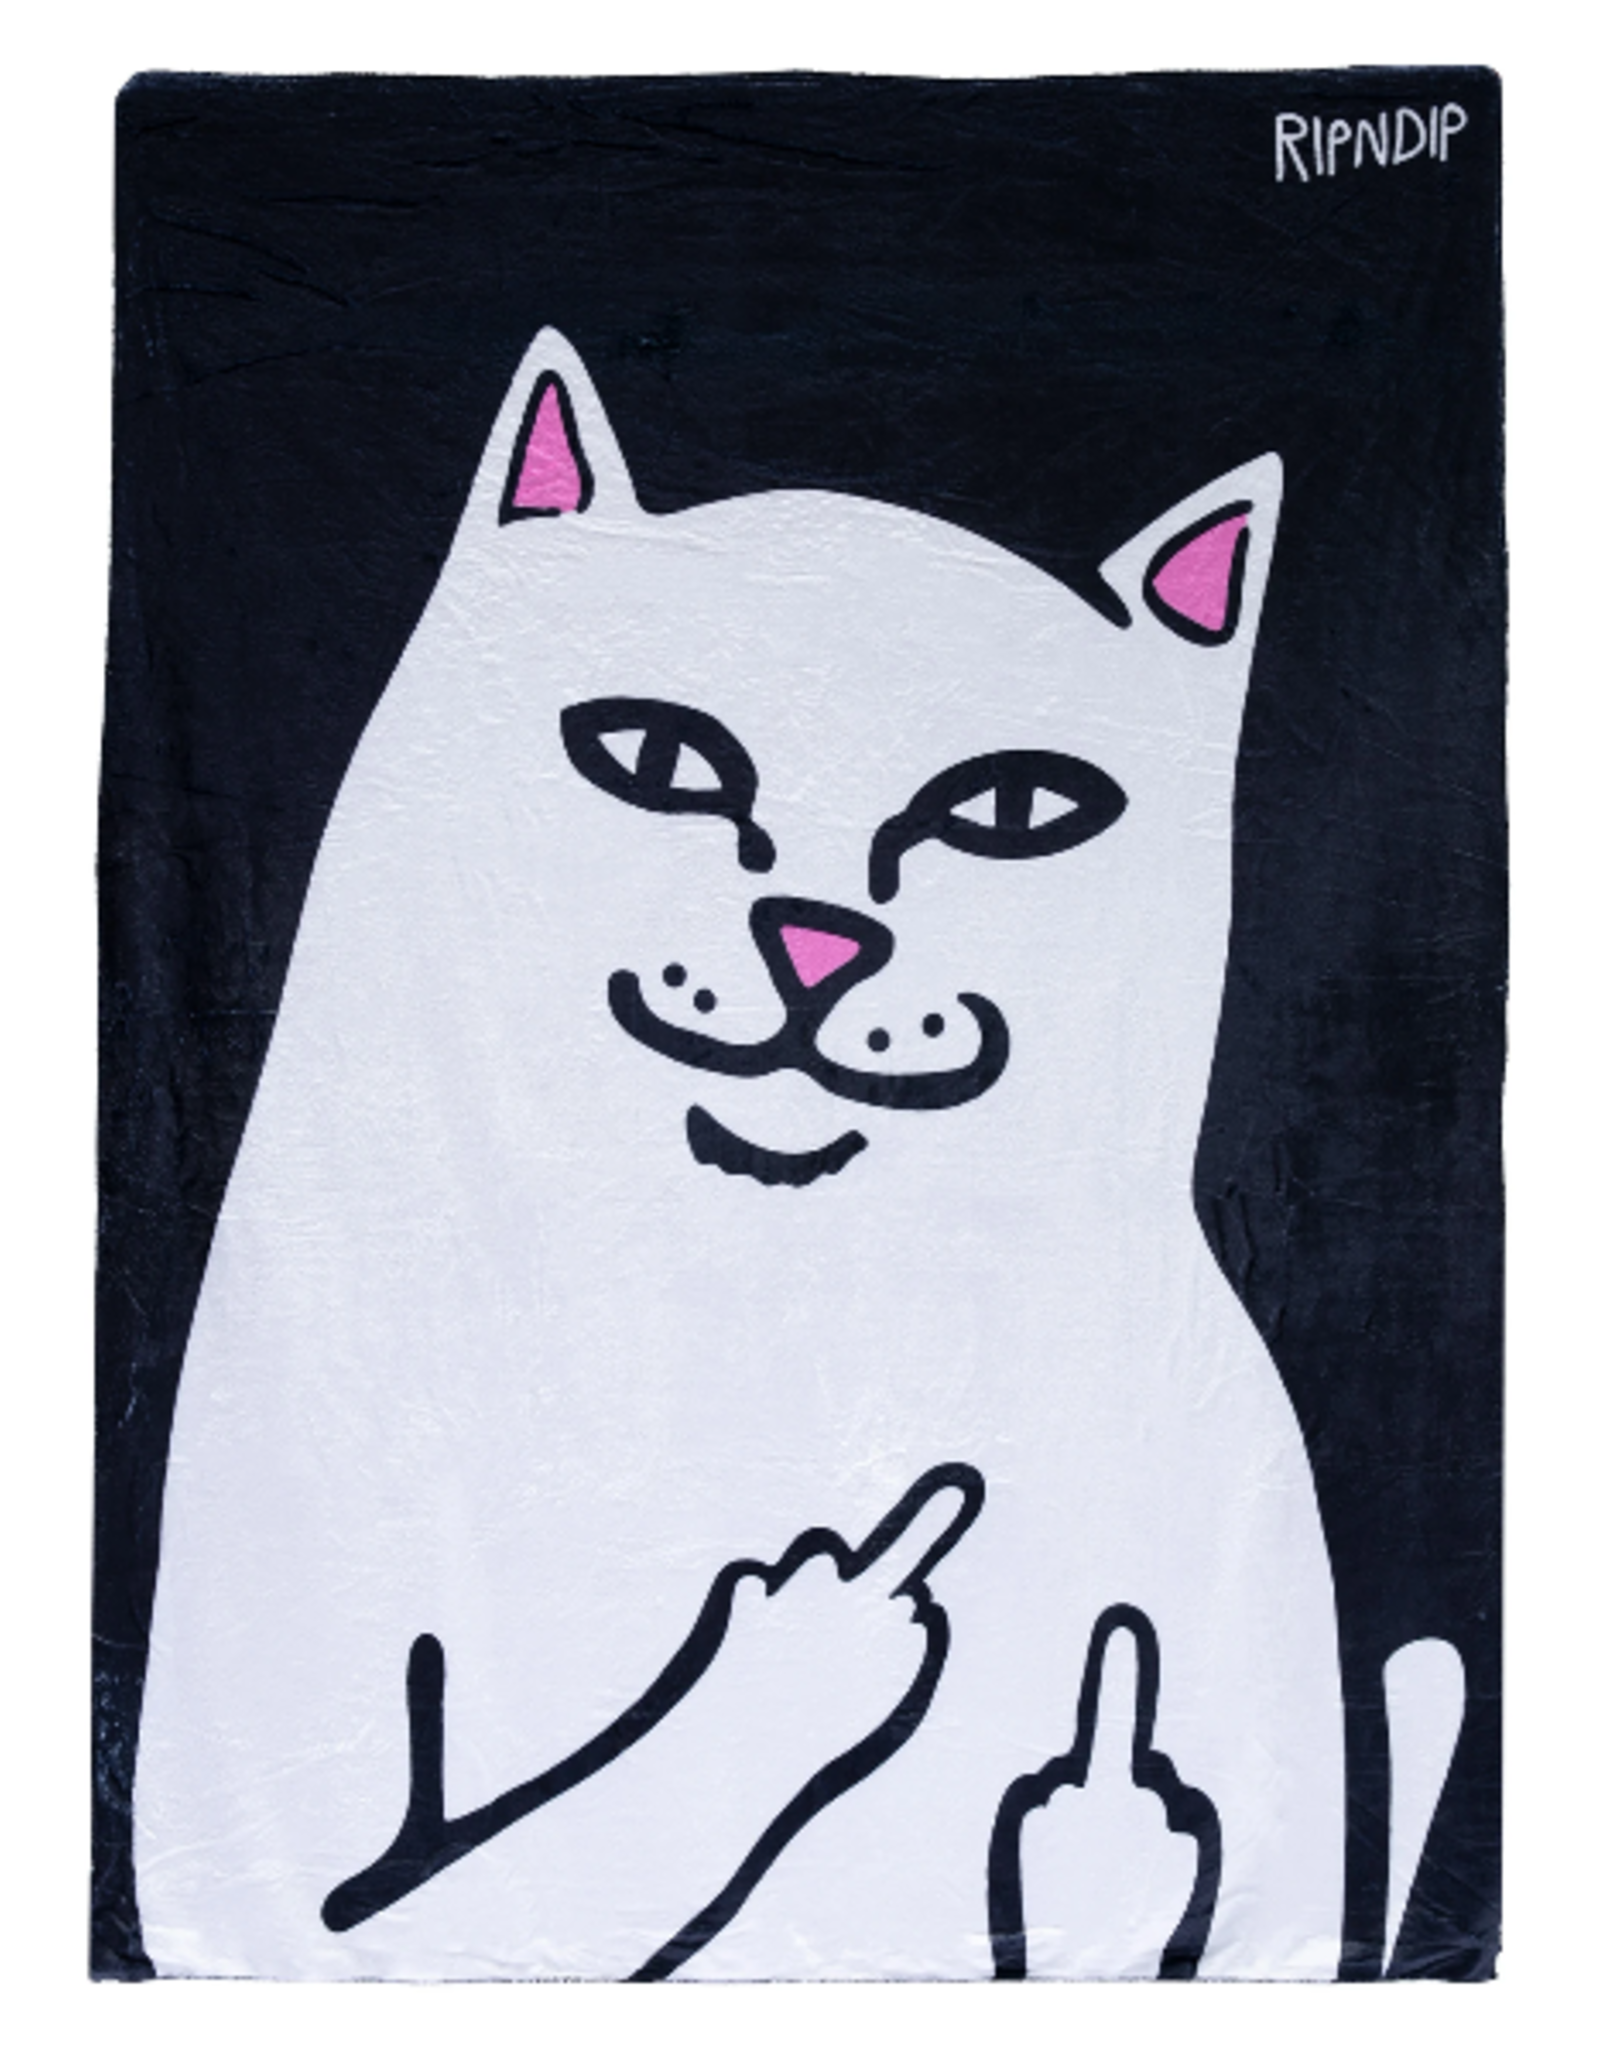 Ripndip THROW BLANKET LORD NERMAL BLK